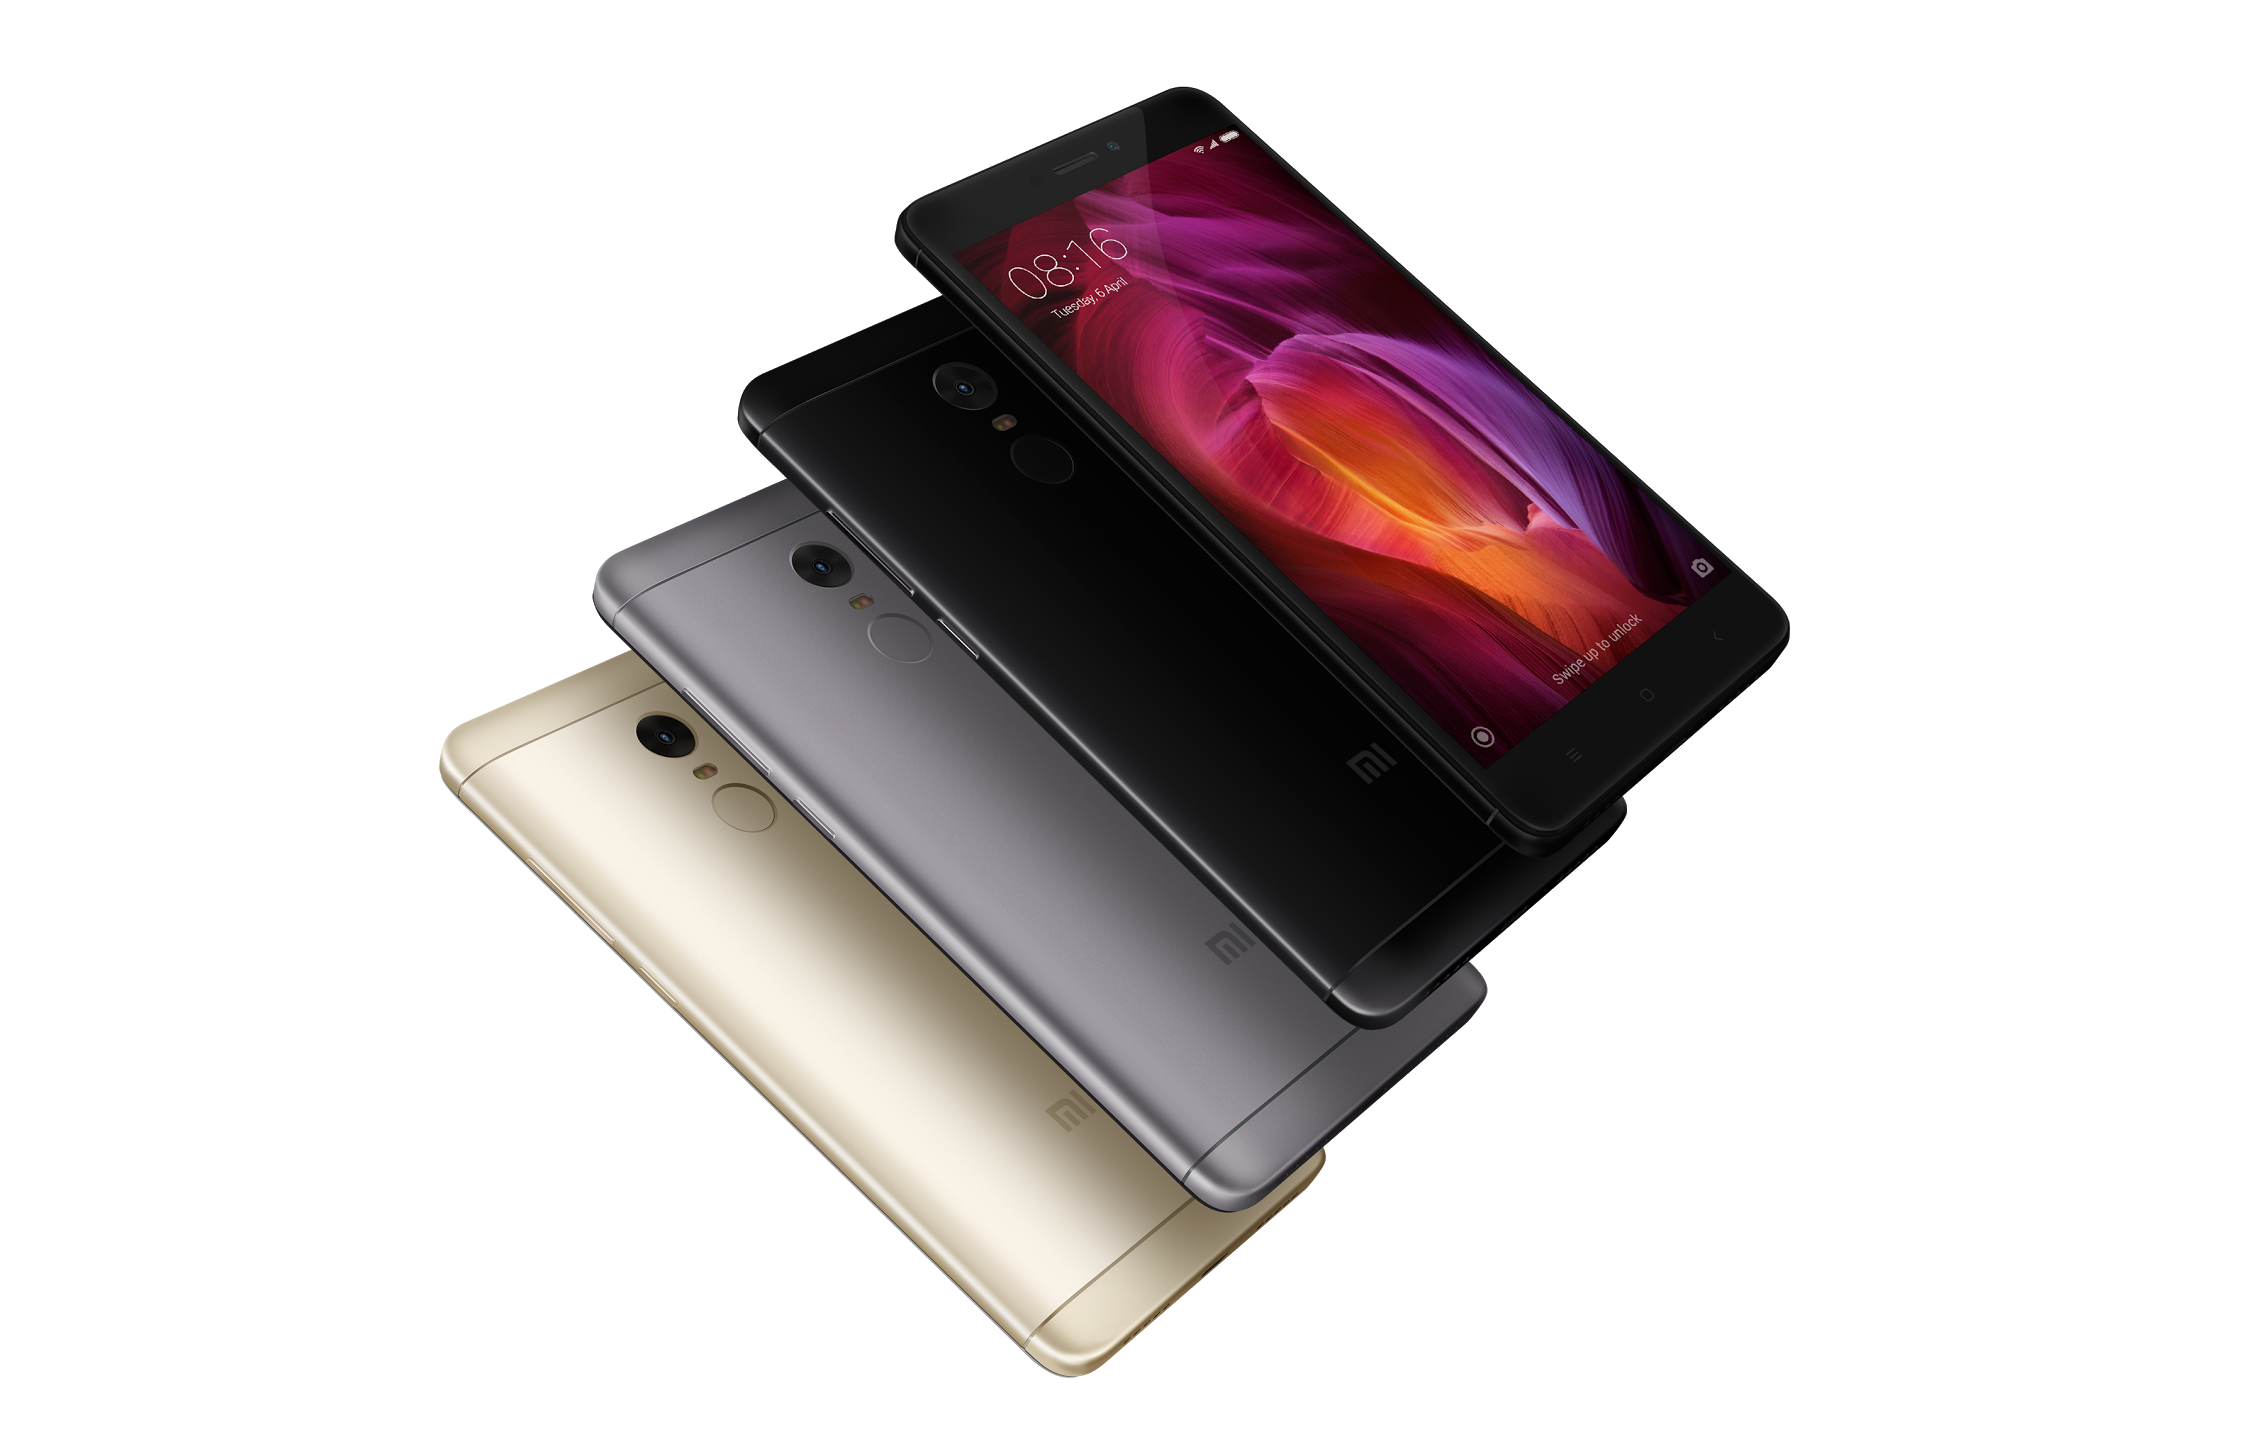 Xiaomi Redmi Note 4 Full Specification: Xiaomi Redmi Note 4 India Specifications, Pricing And